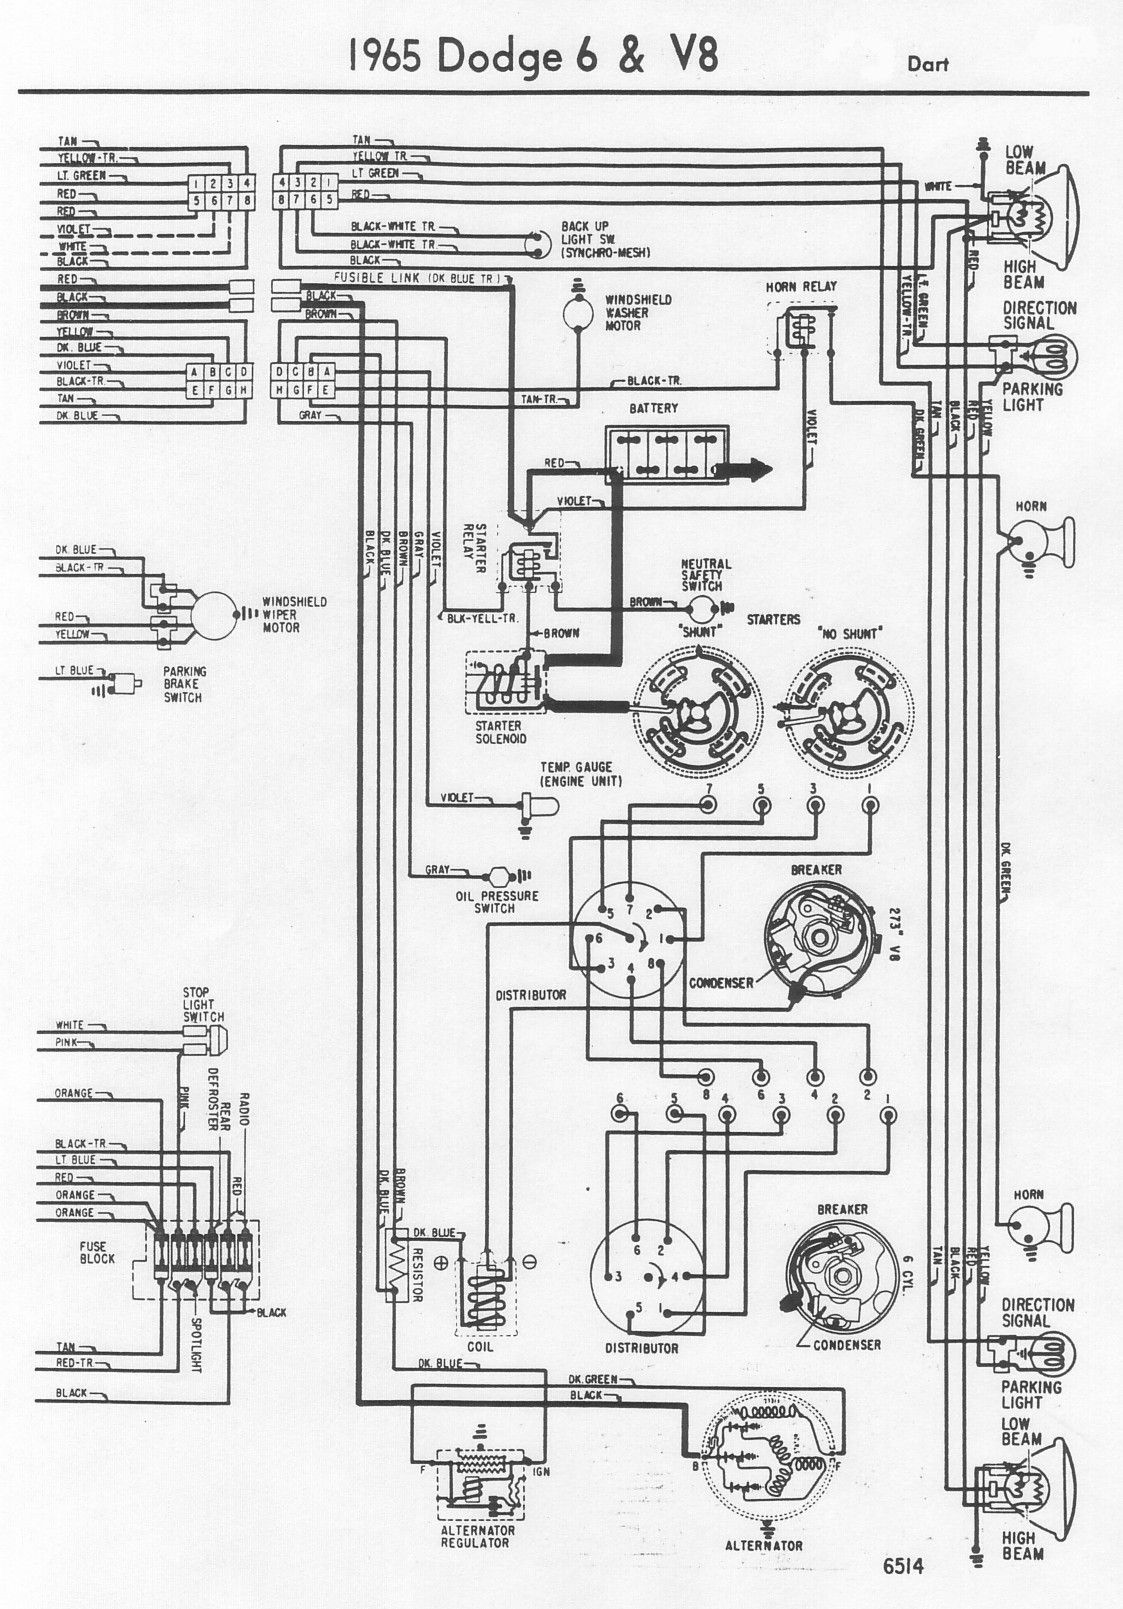 1950 Dodge Wiring 1970 Coronet Diagram Data Schema 1967 Dart Gt Schematic Diagrams U2022 Rh Detox Design Co Starter